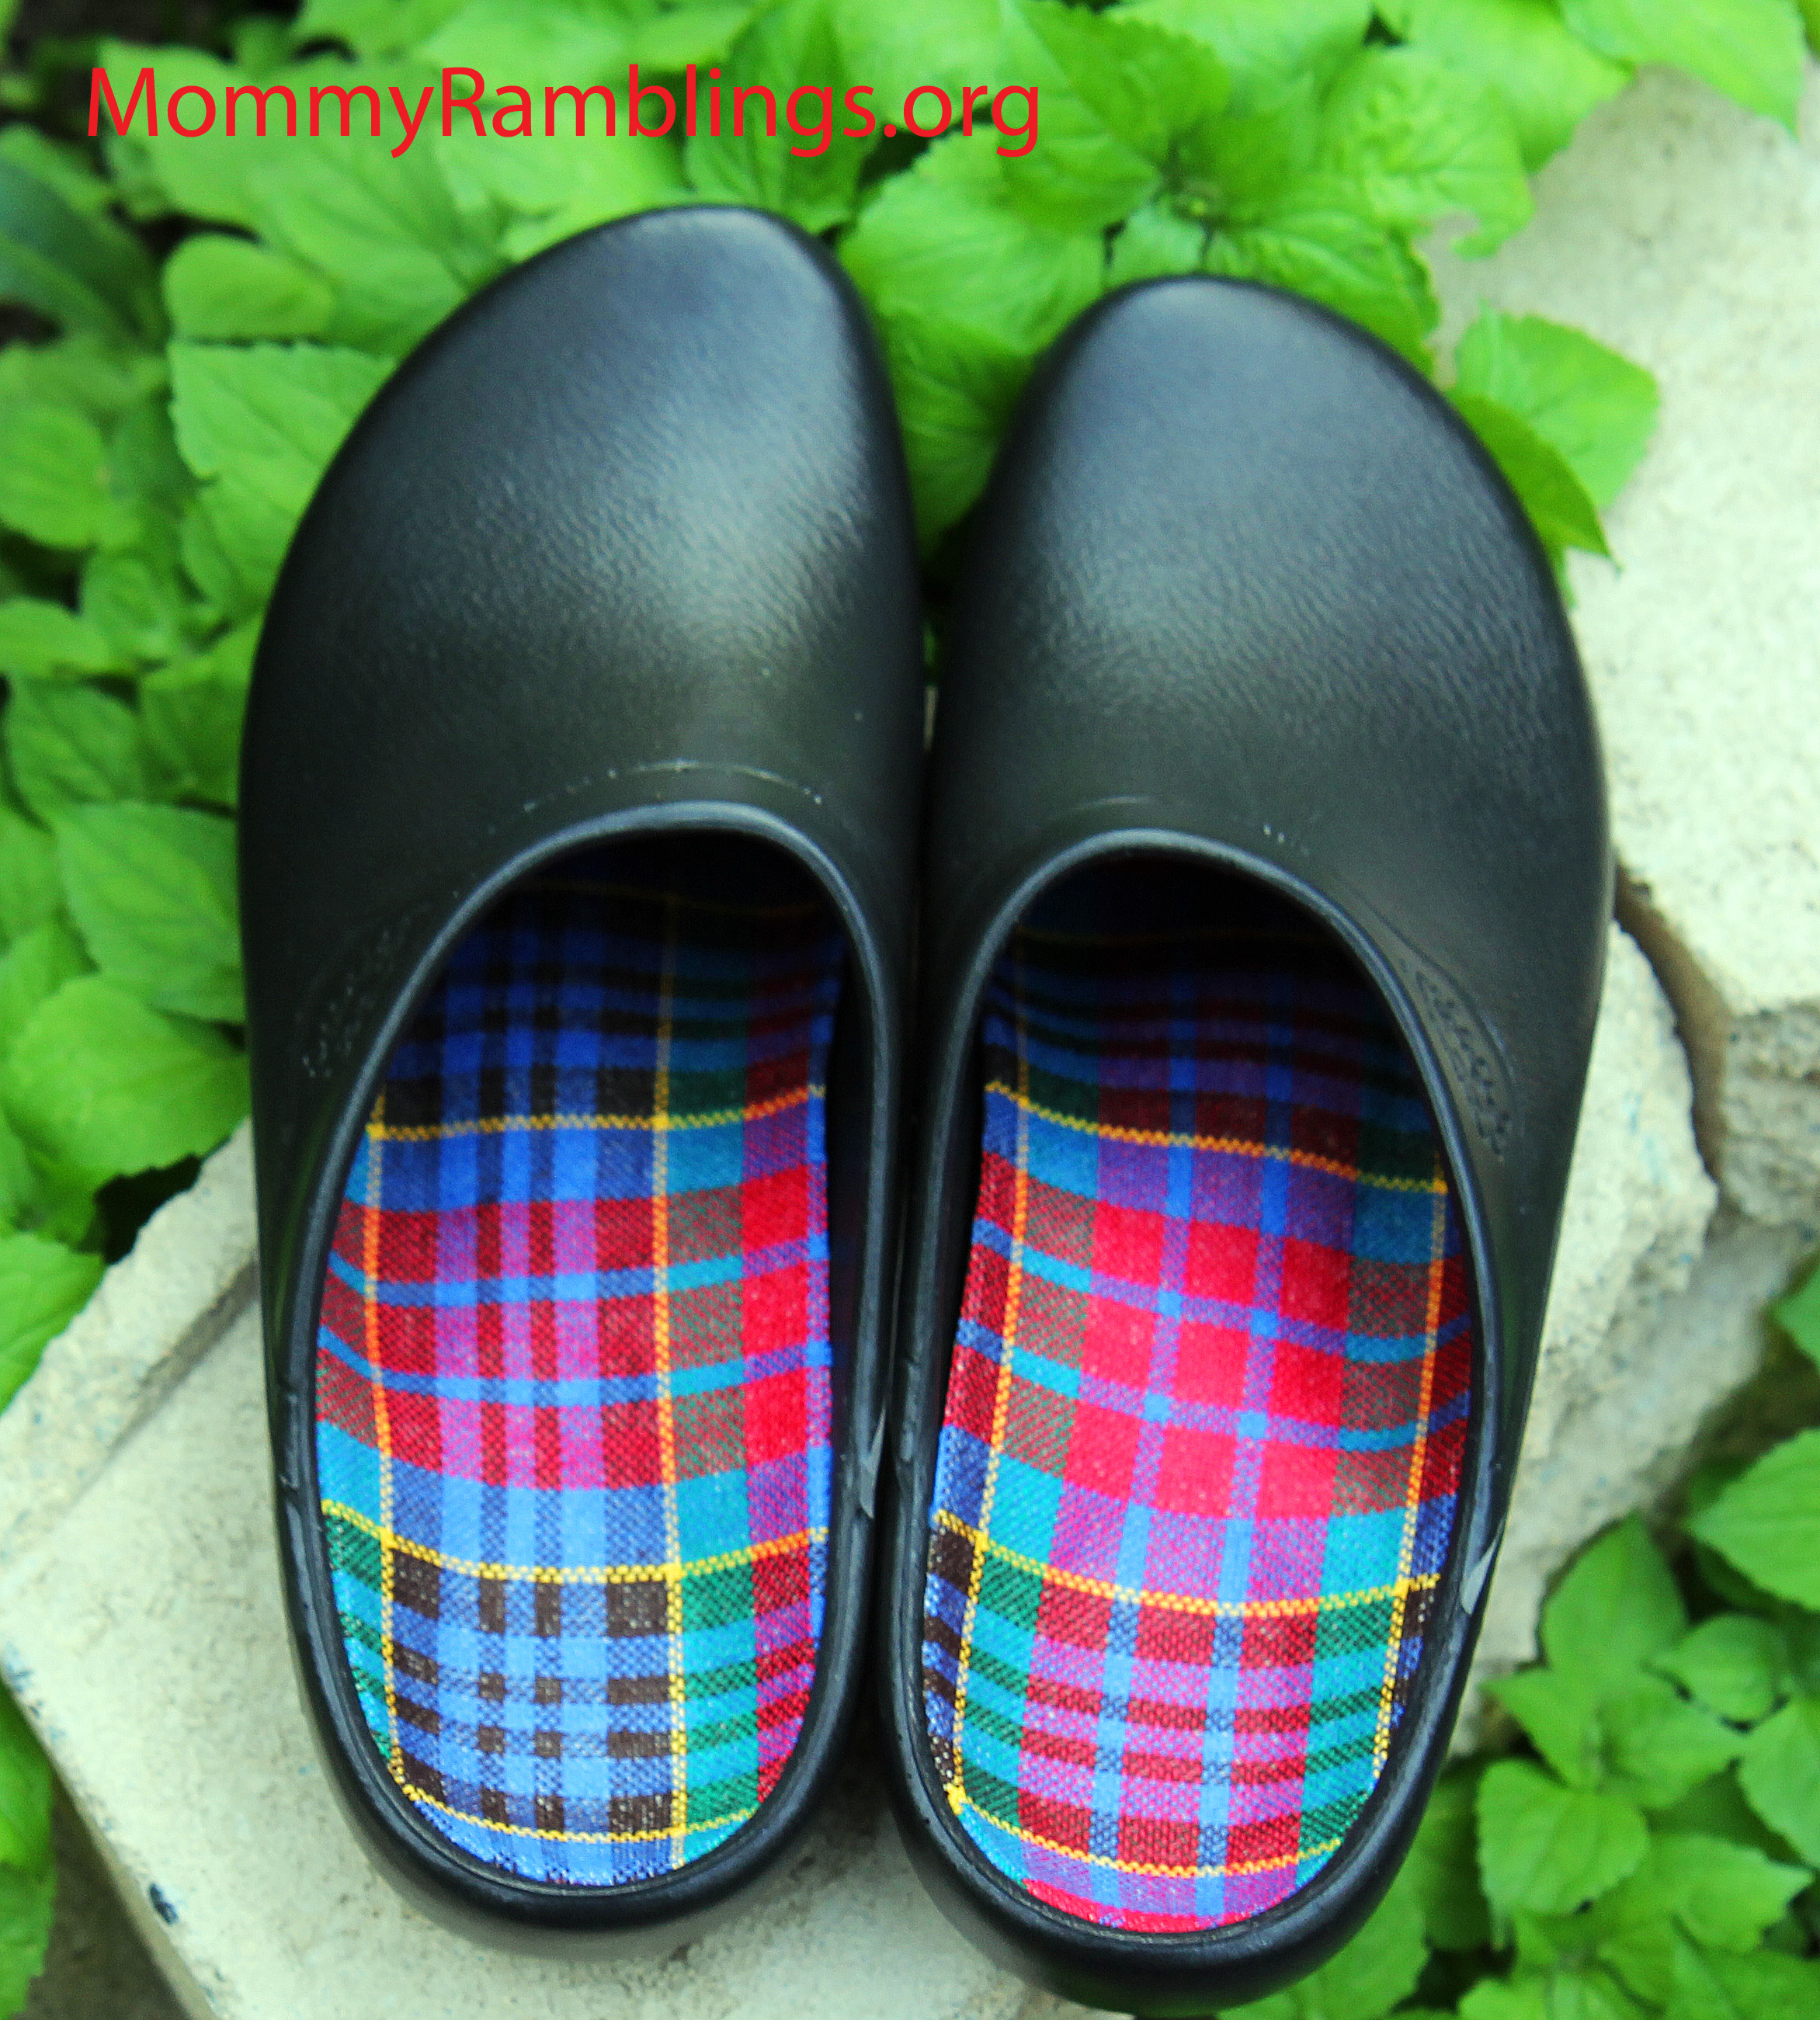 garden clogs womens. So Garden Clogs Womens A